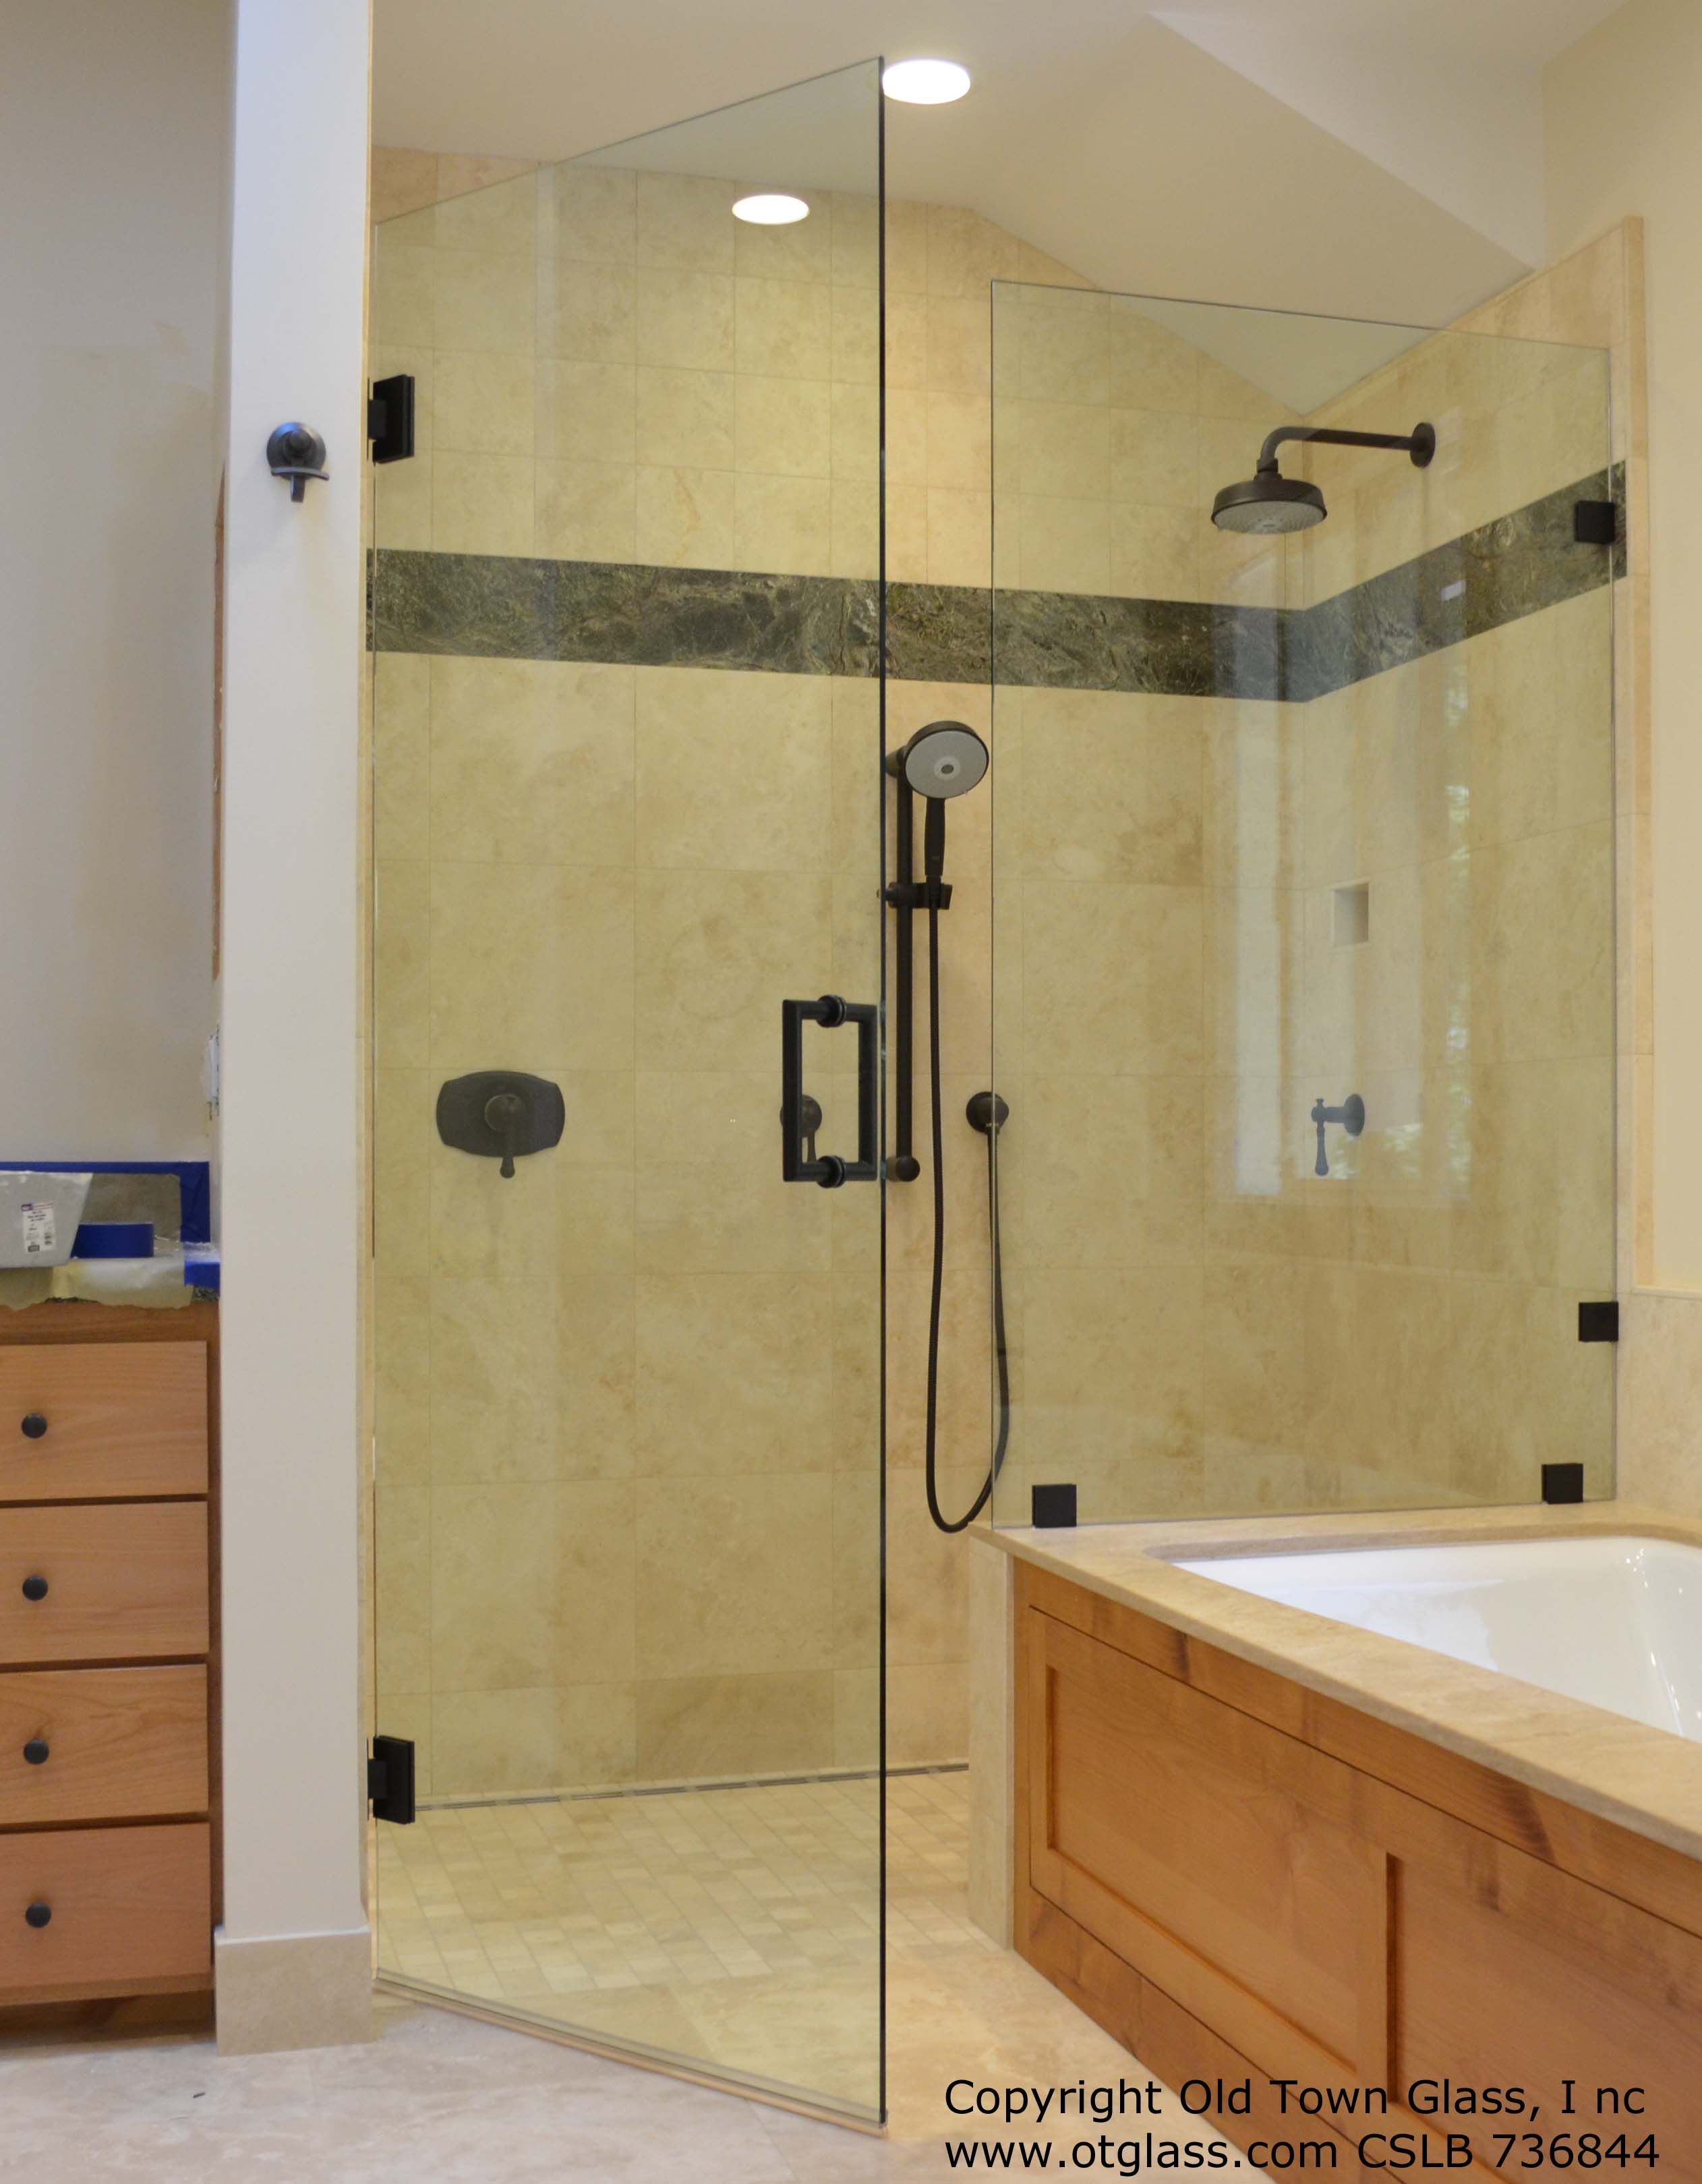 38 frameless shower door features a door and panel inline with 38 frameless shower door features a door and panel inline with the planetlyrics Image collections